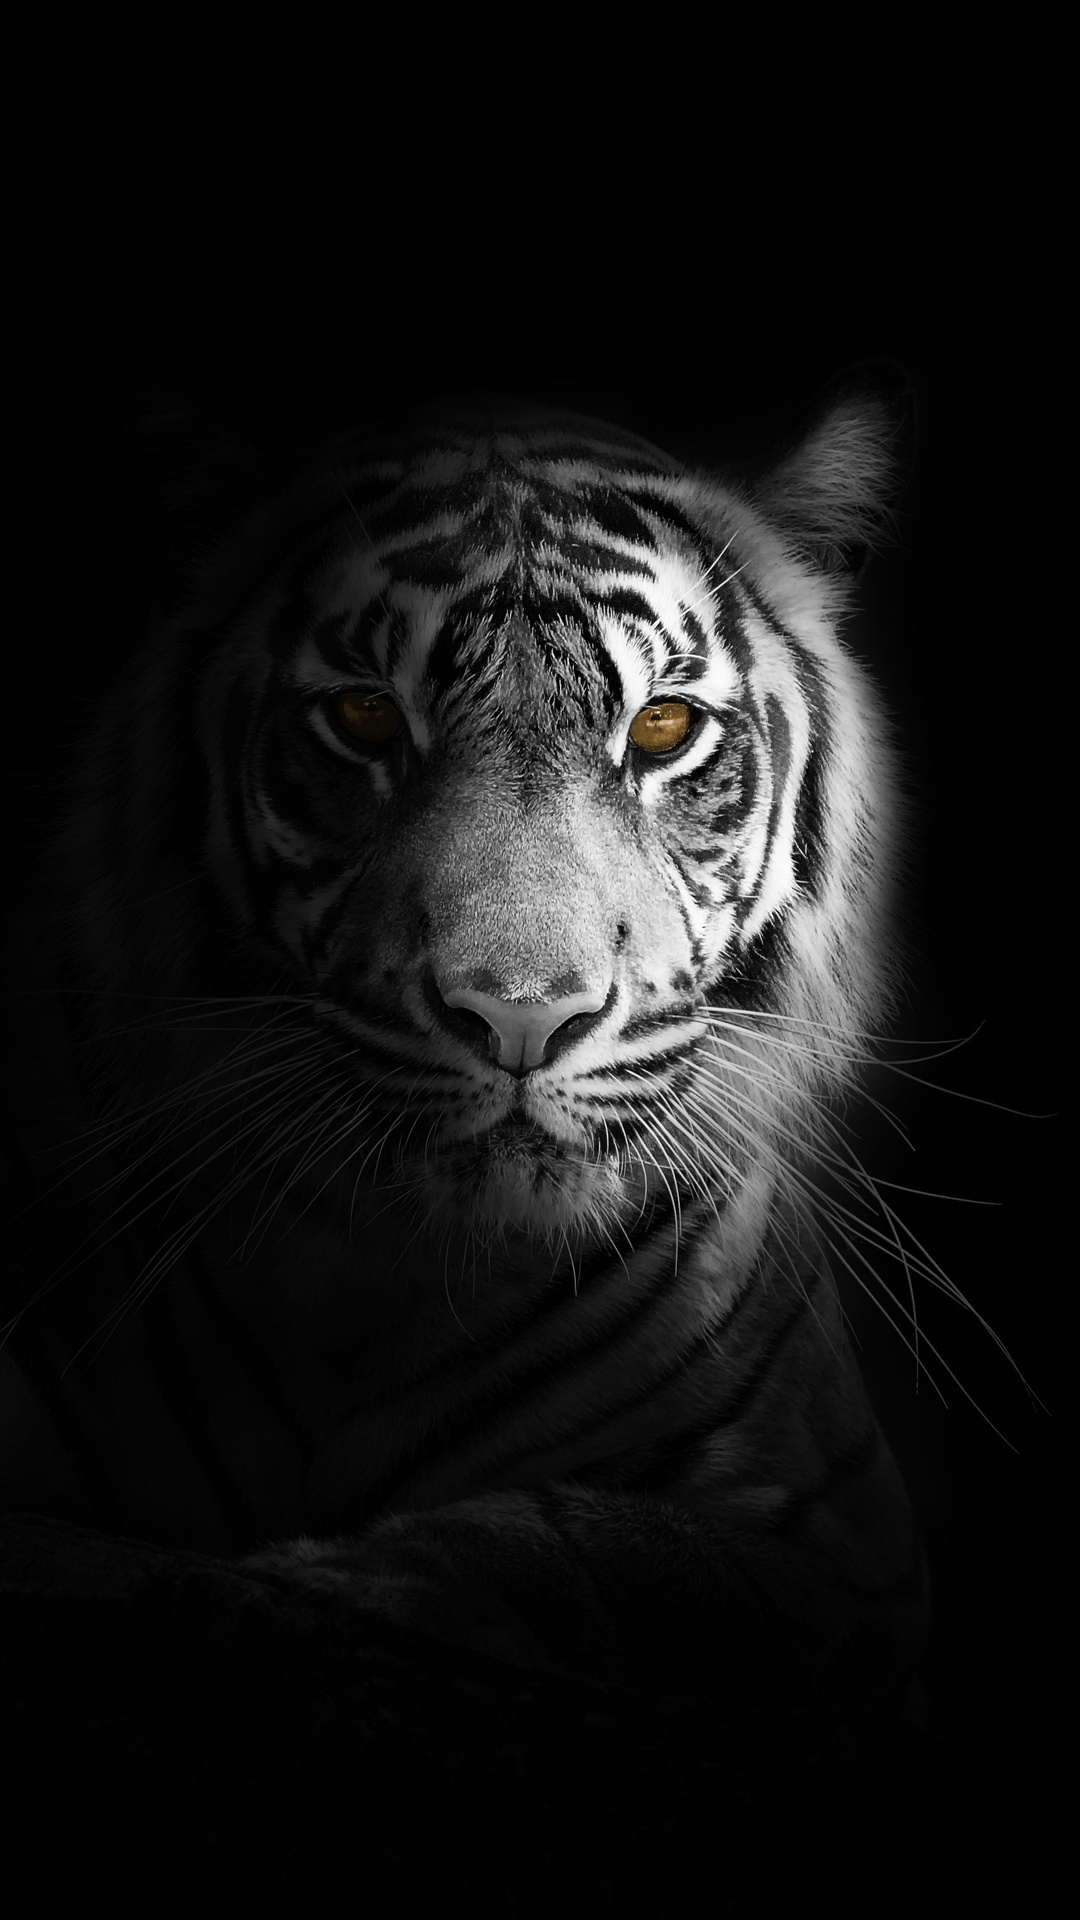 1080x1920 Big Cat Tiger 4k Iphone 7 6s 6 Plus Pixel Xl One